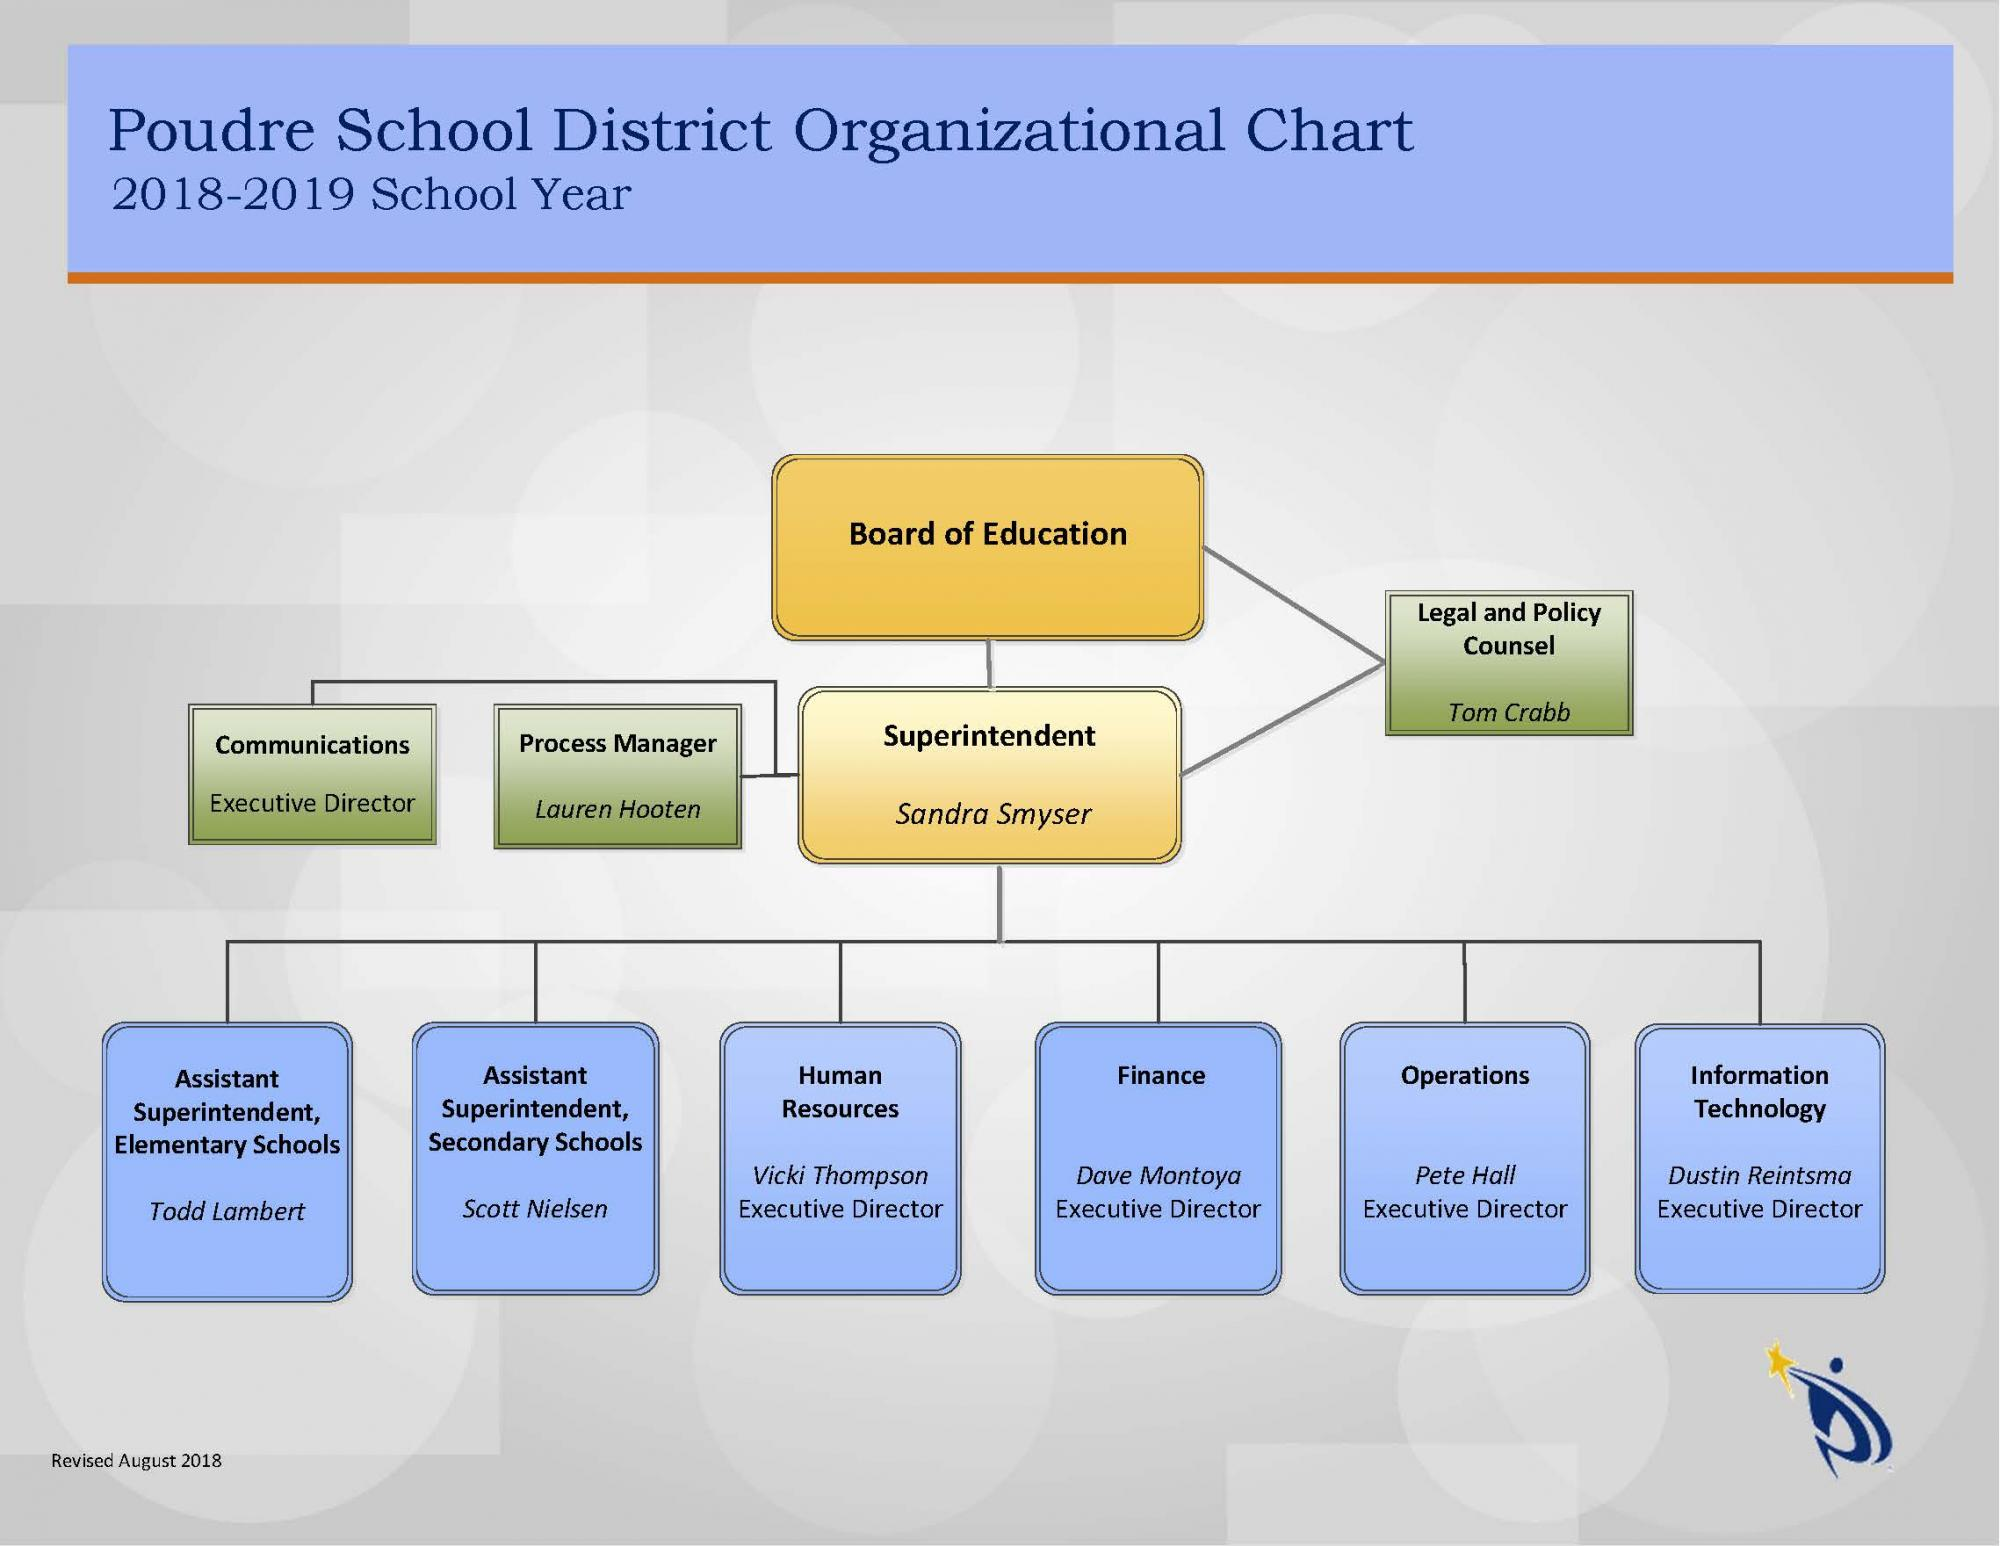 PSD organizational chart for the 2018-19 school year.